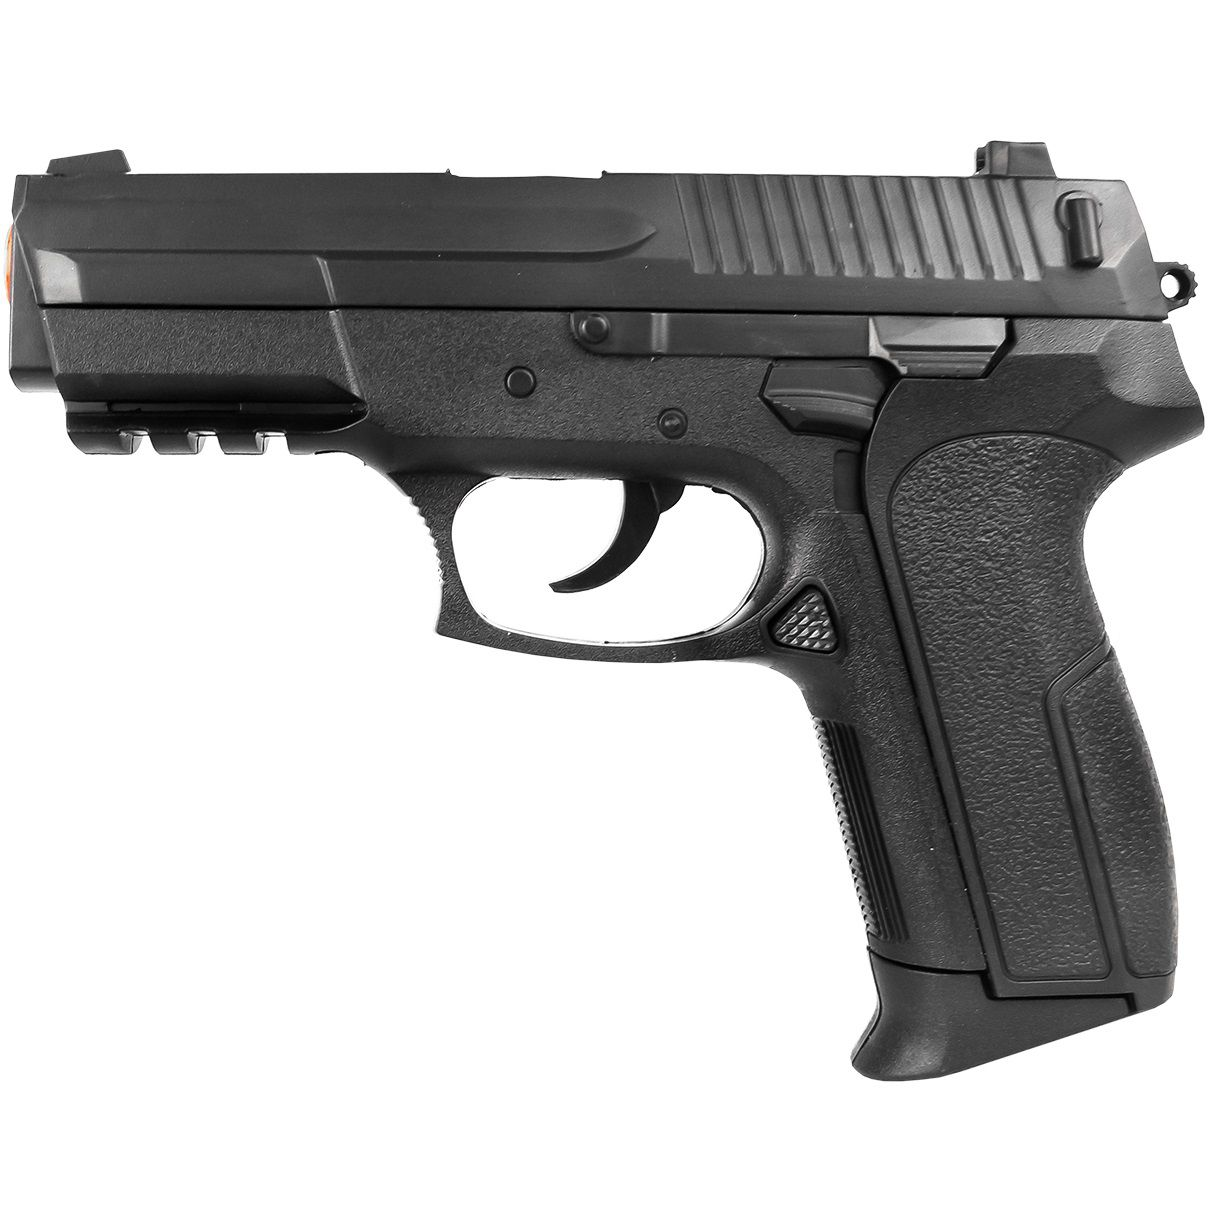 PISTOLA AIRSOFT ROSSI MOLA PP VG S2022 2018 6 MM